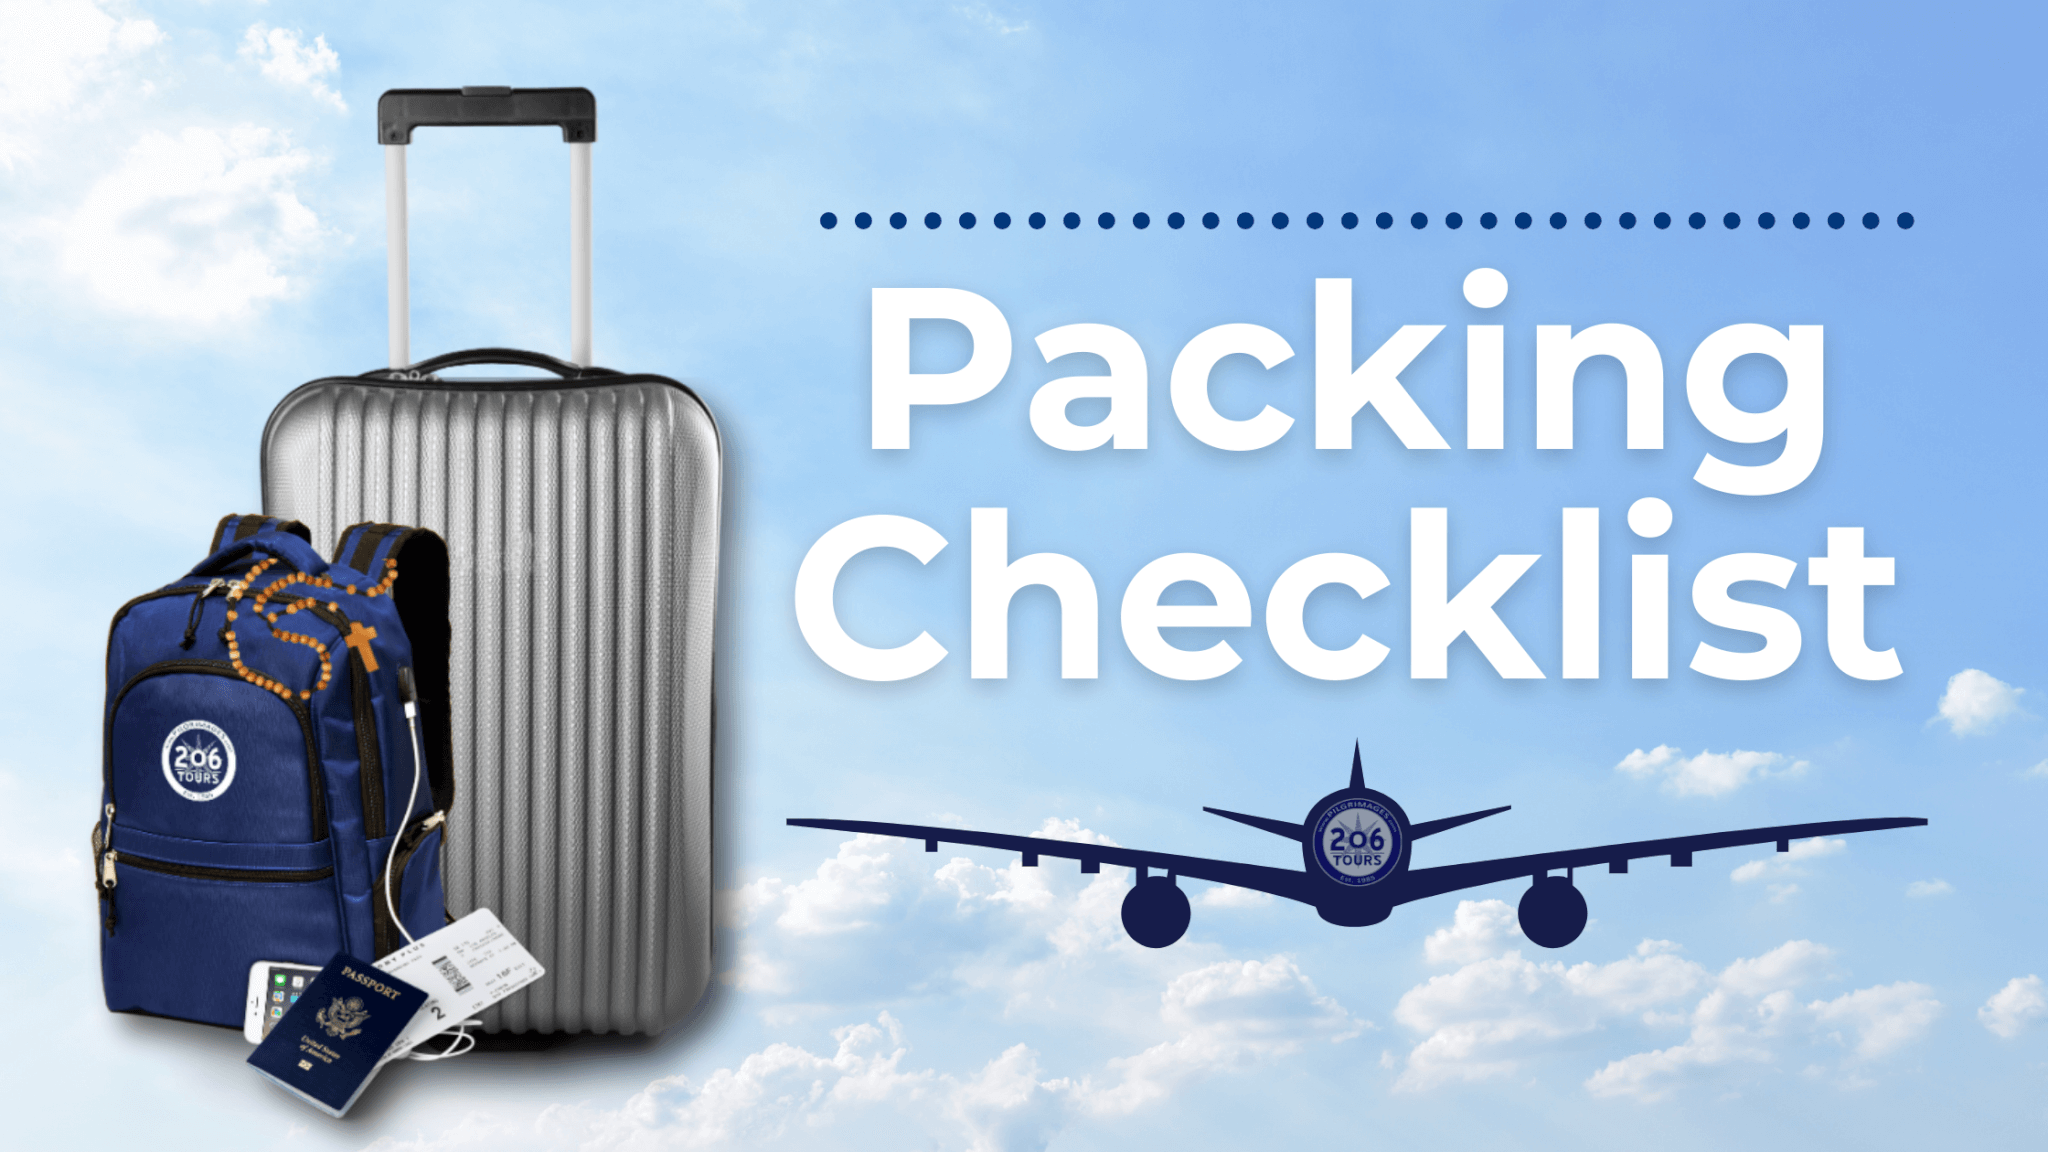 packing-checklist-206tours